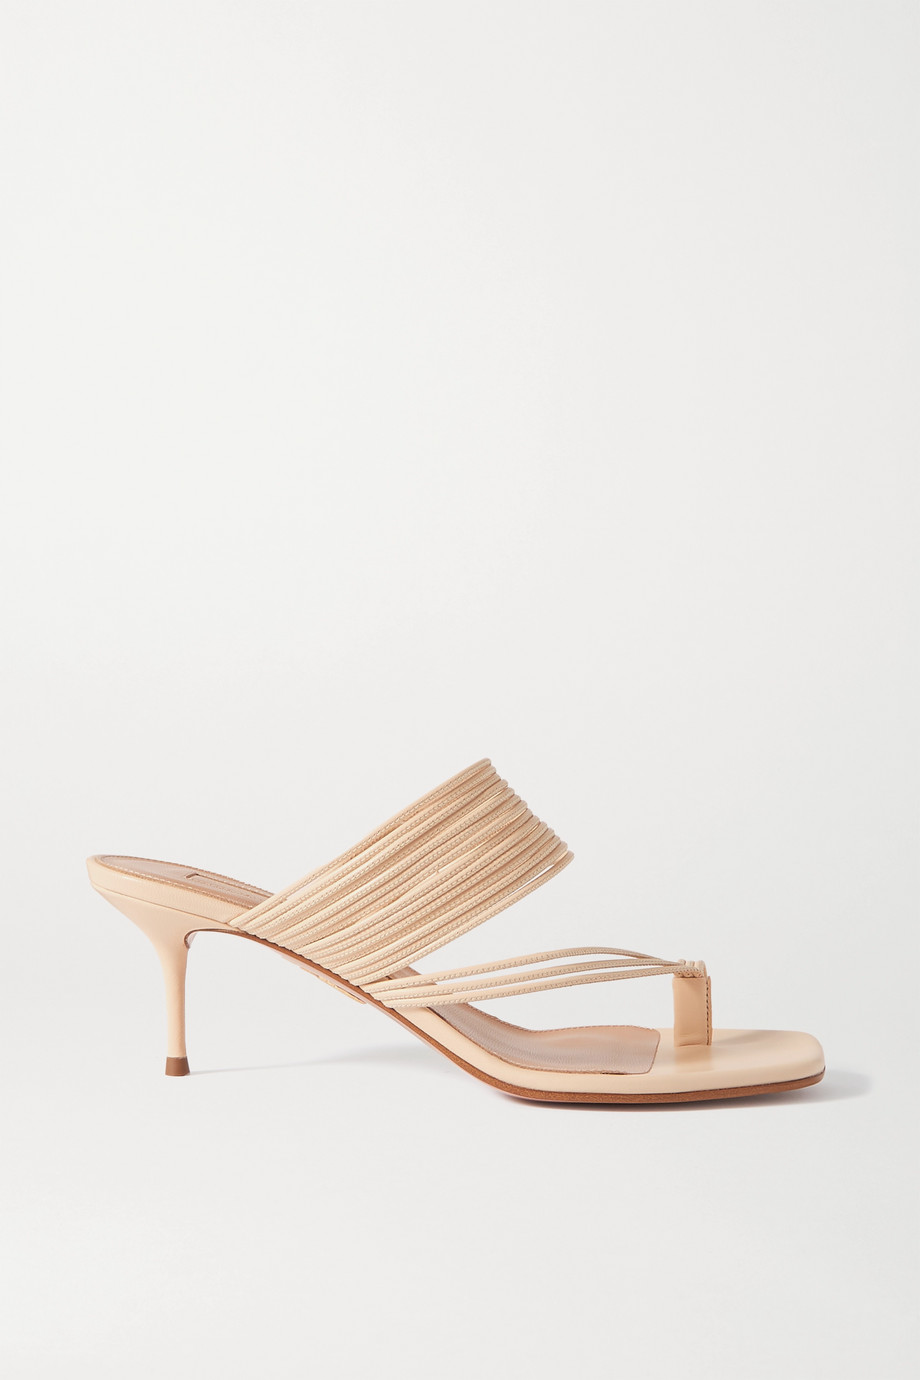 Aquazzura Sunny 60 leather sandals